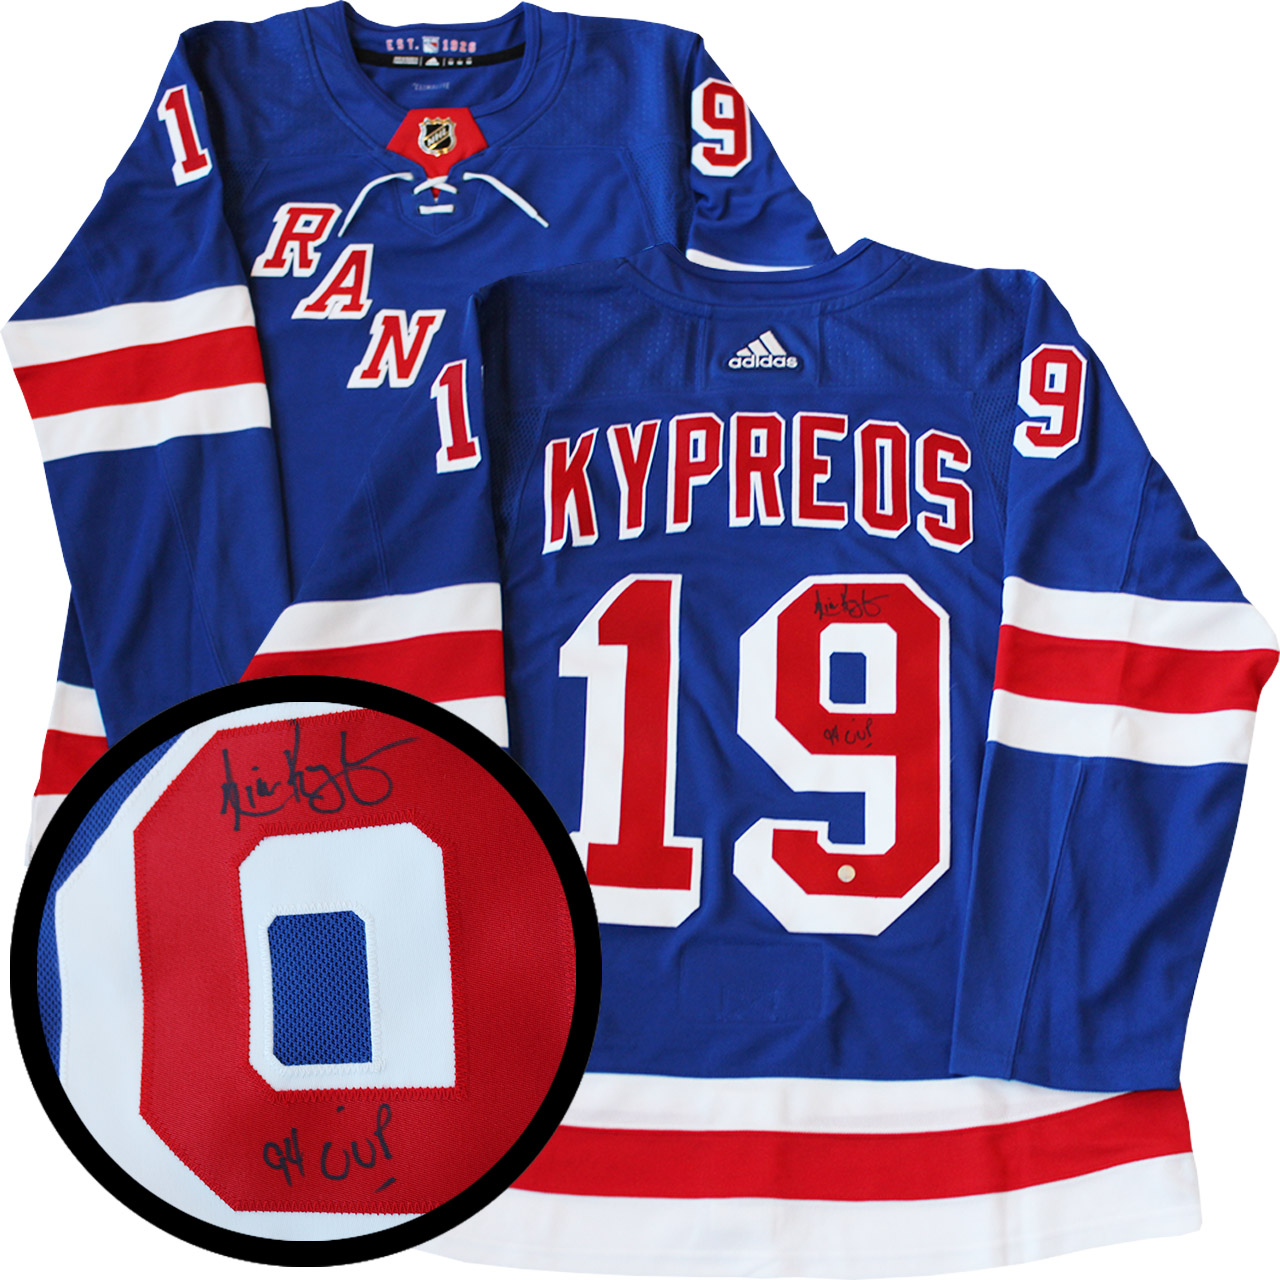 best website 50289 285a1 Lot Detail - Nick Kypreos Signed Jersey New York Rangers ...